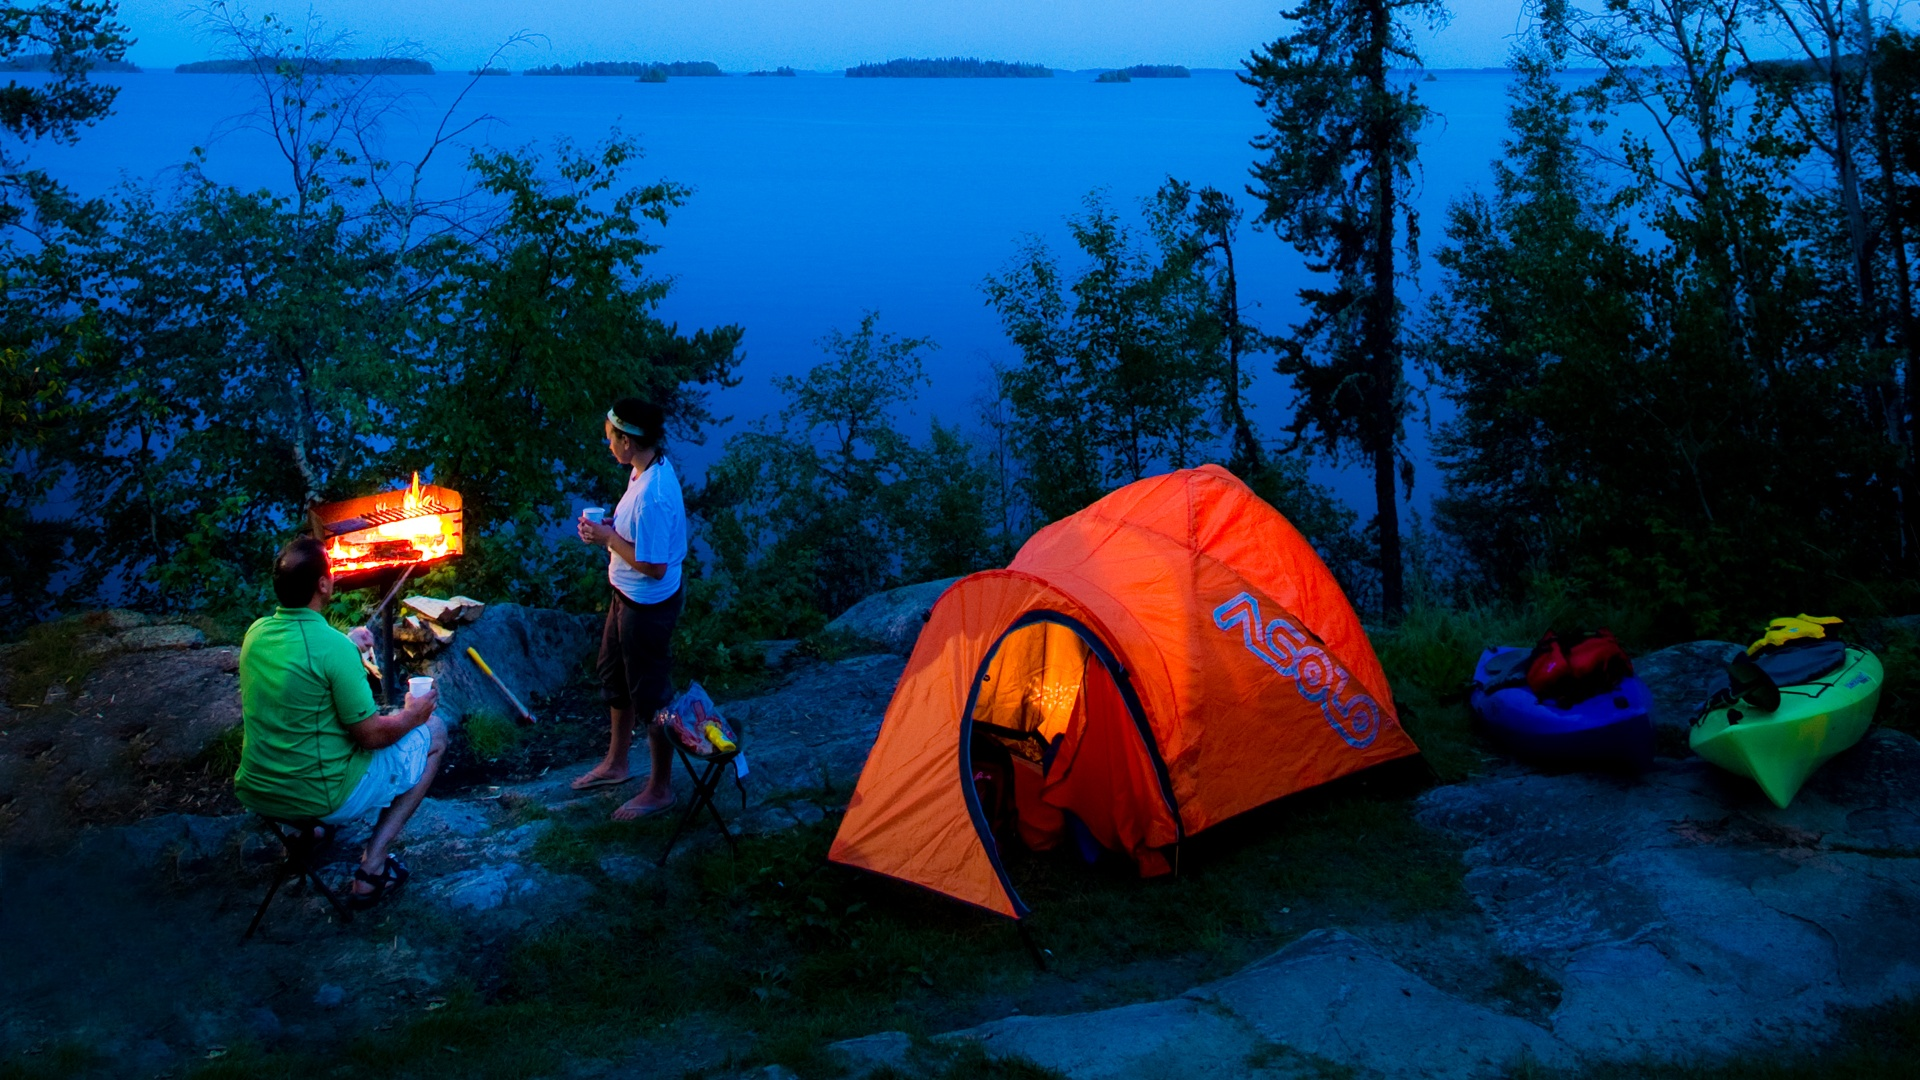 You Can Camp In The Great Outdoors